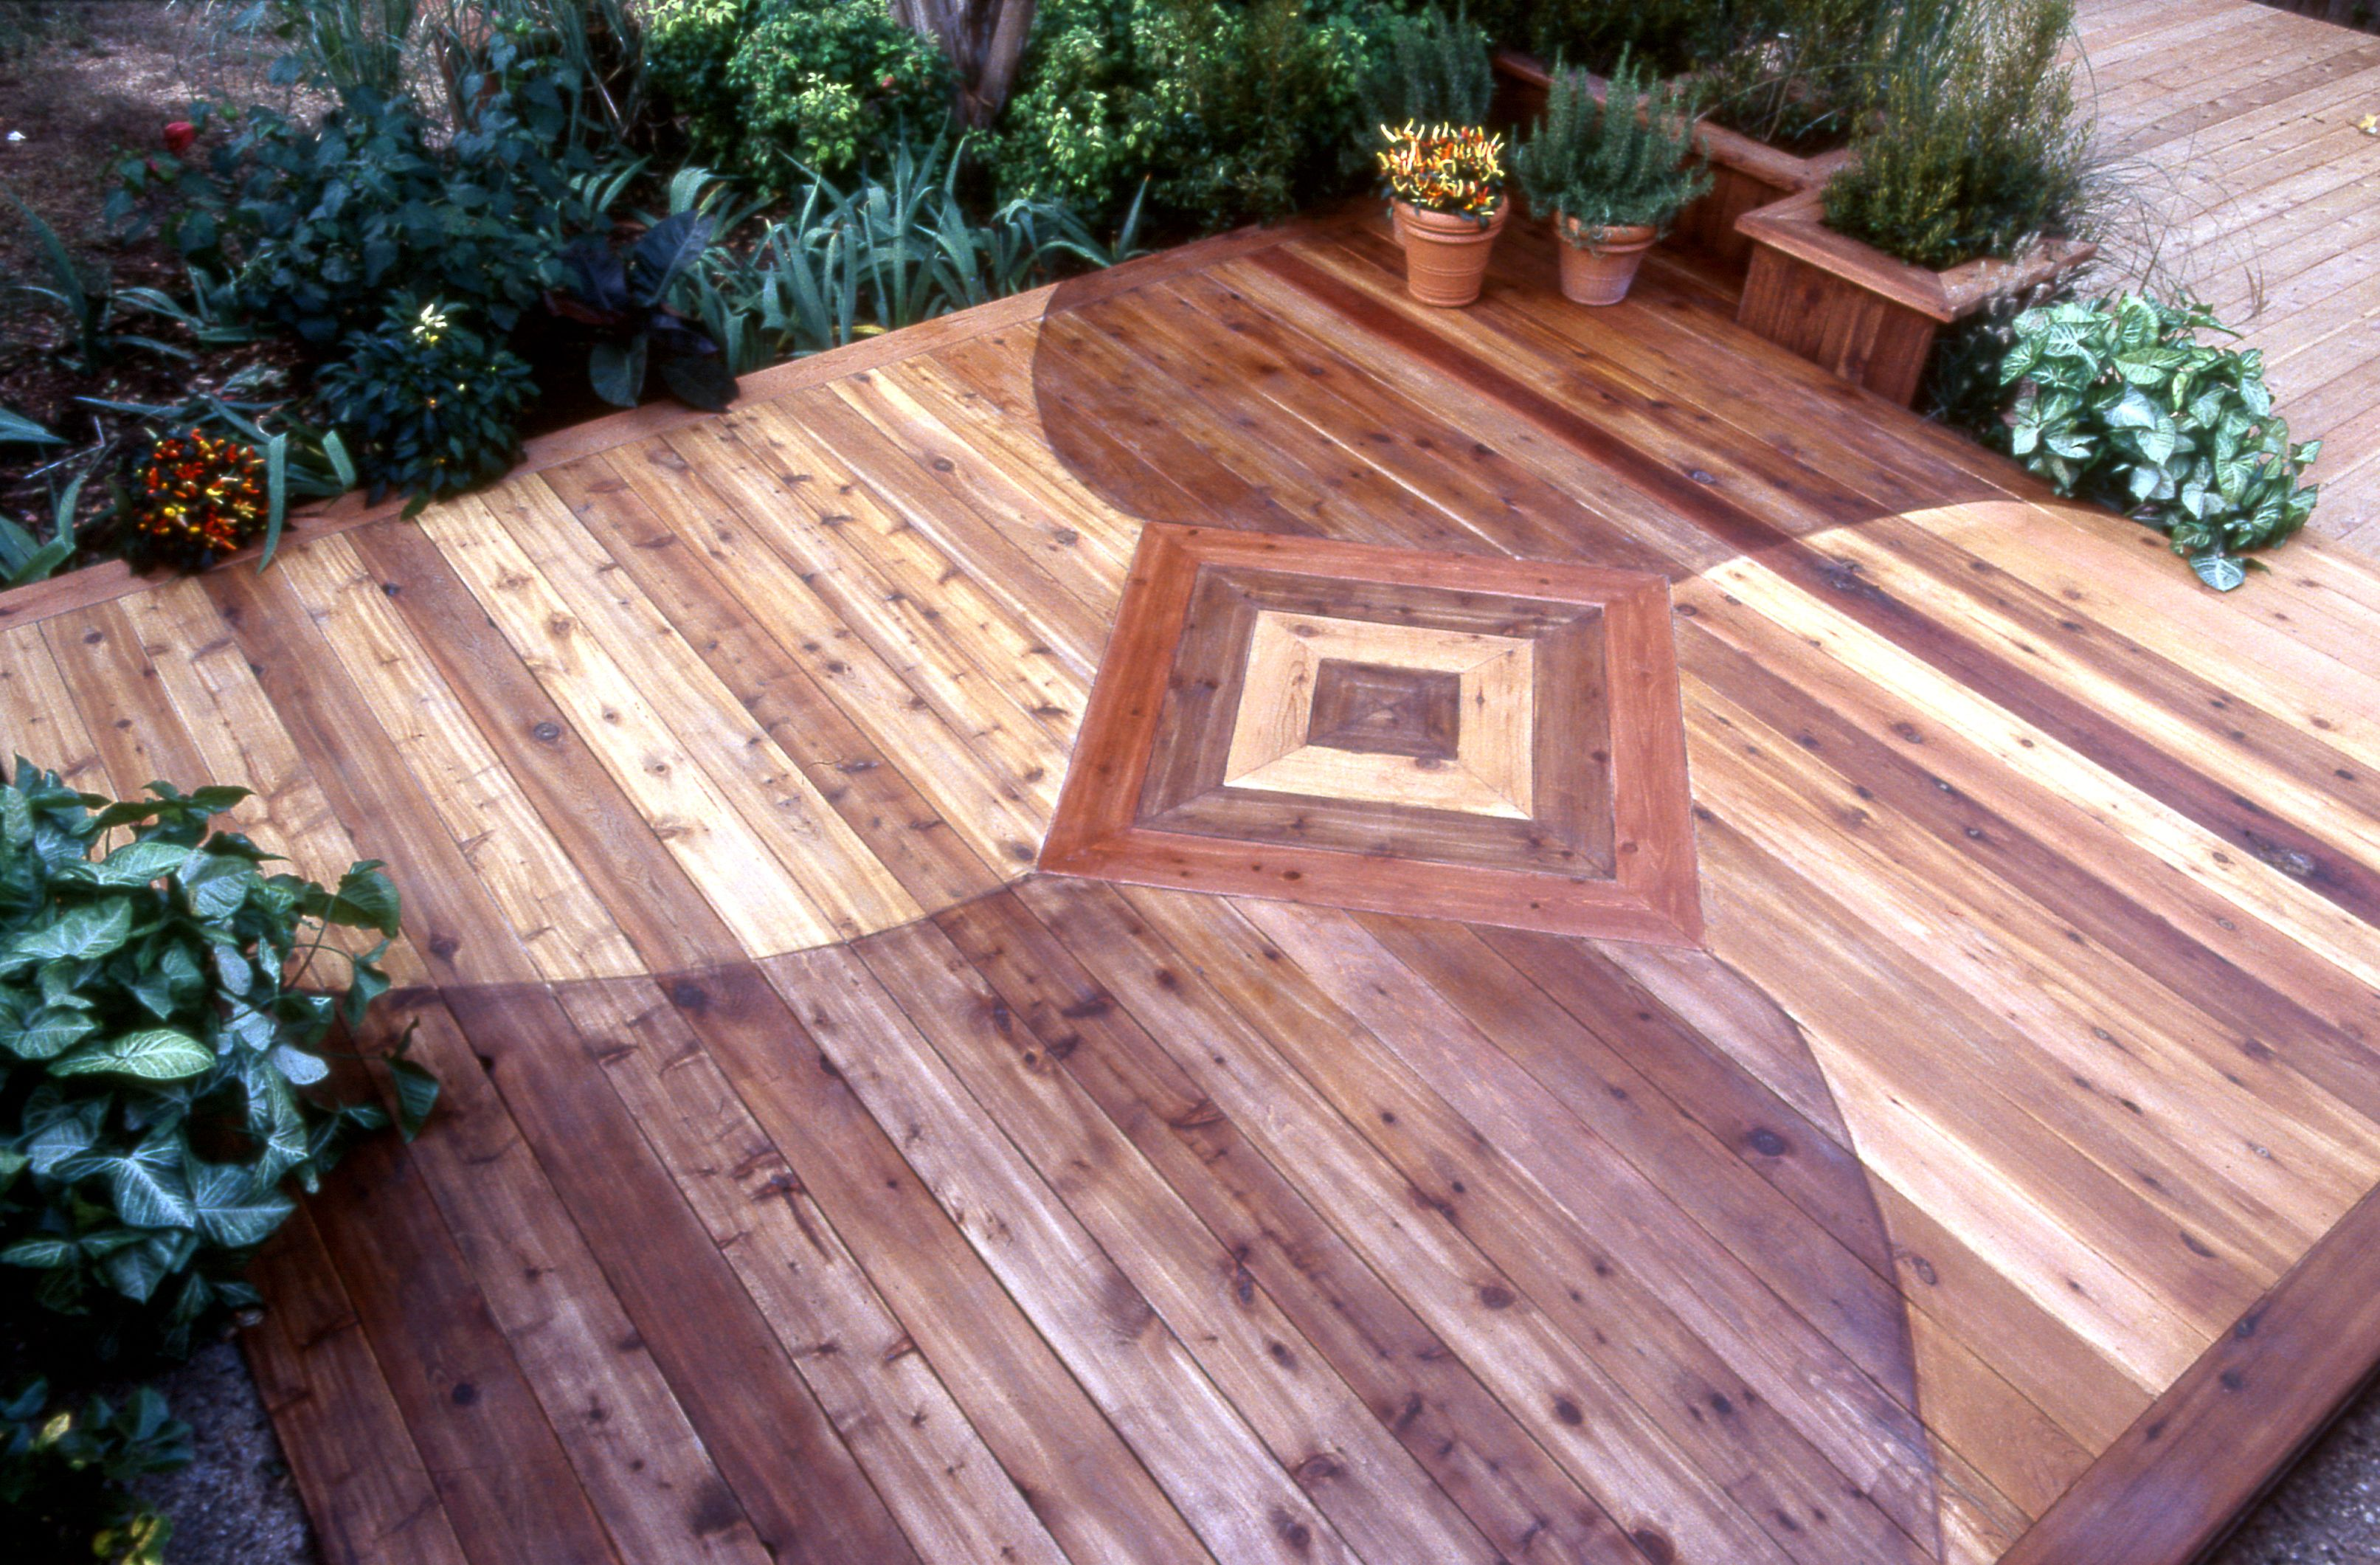 The deck started out as untreated cedar